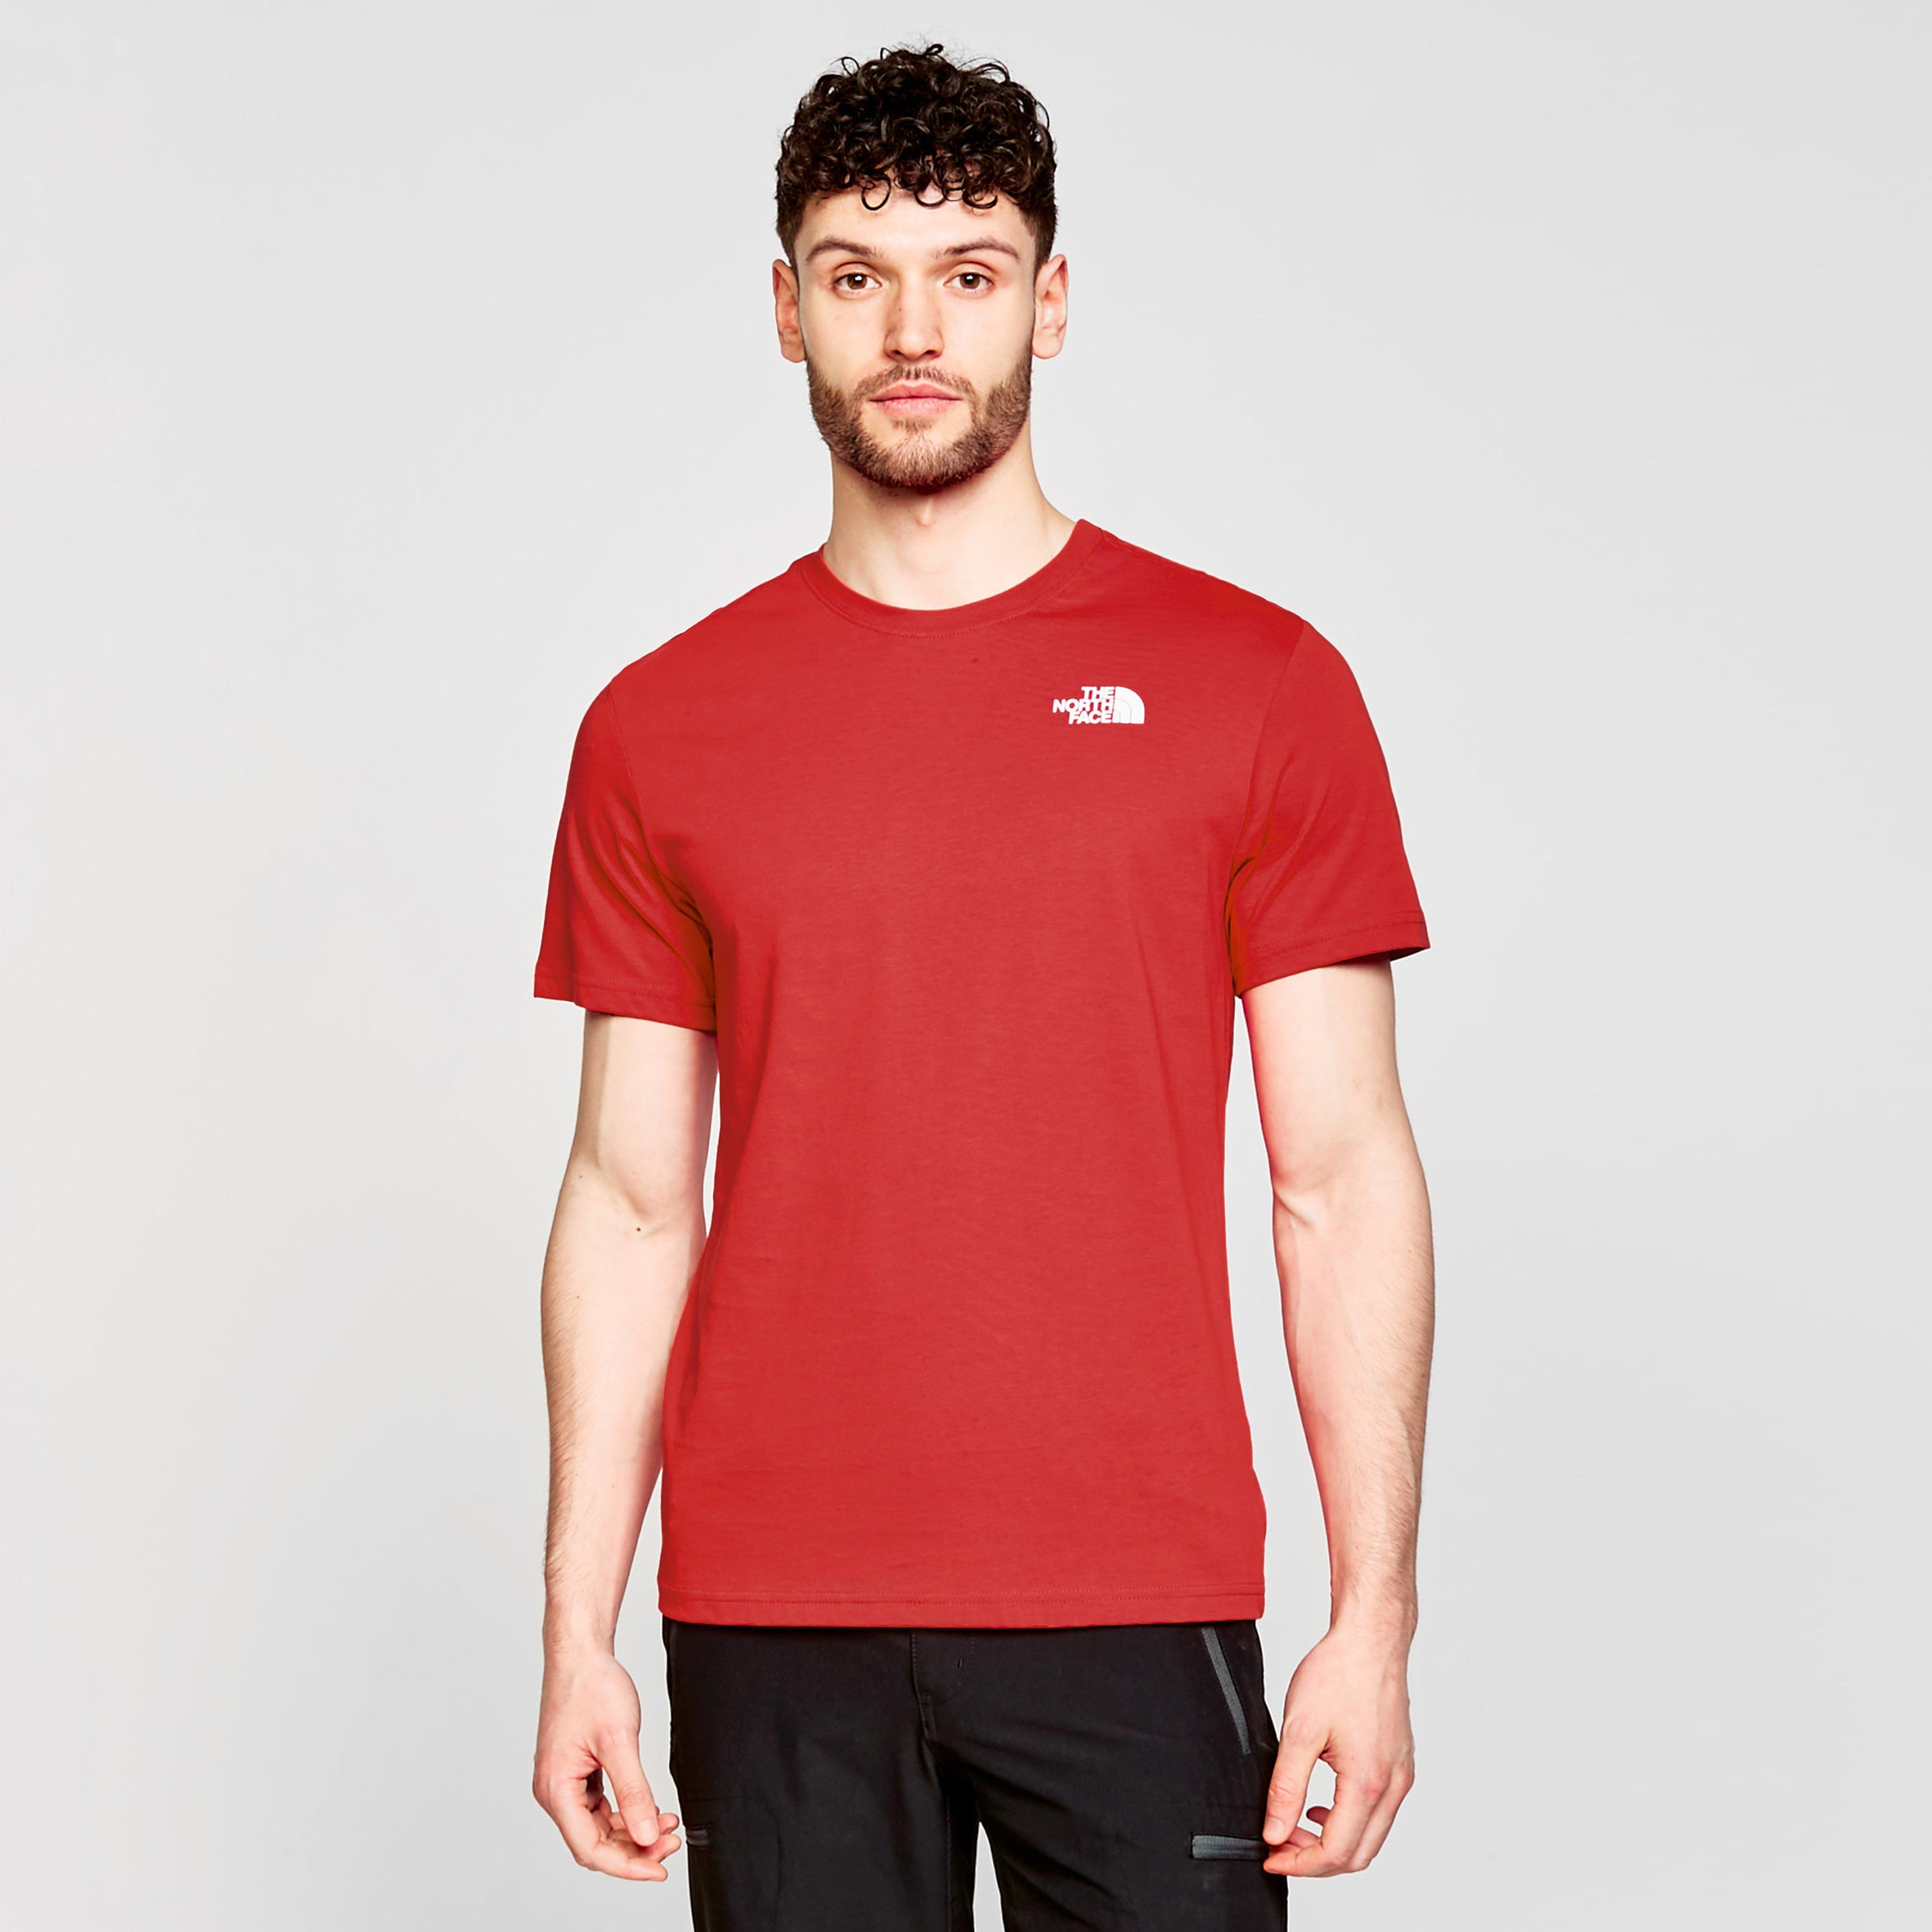 Image of The North Face Red Box T-Shirt - Red/Red, Red/RED